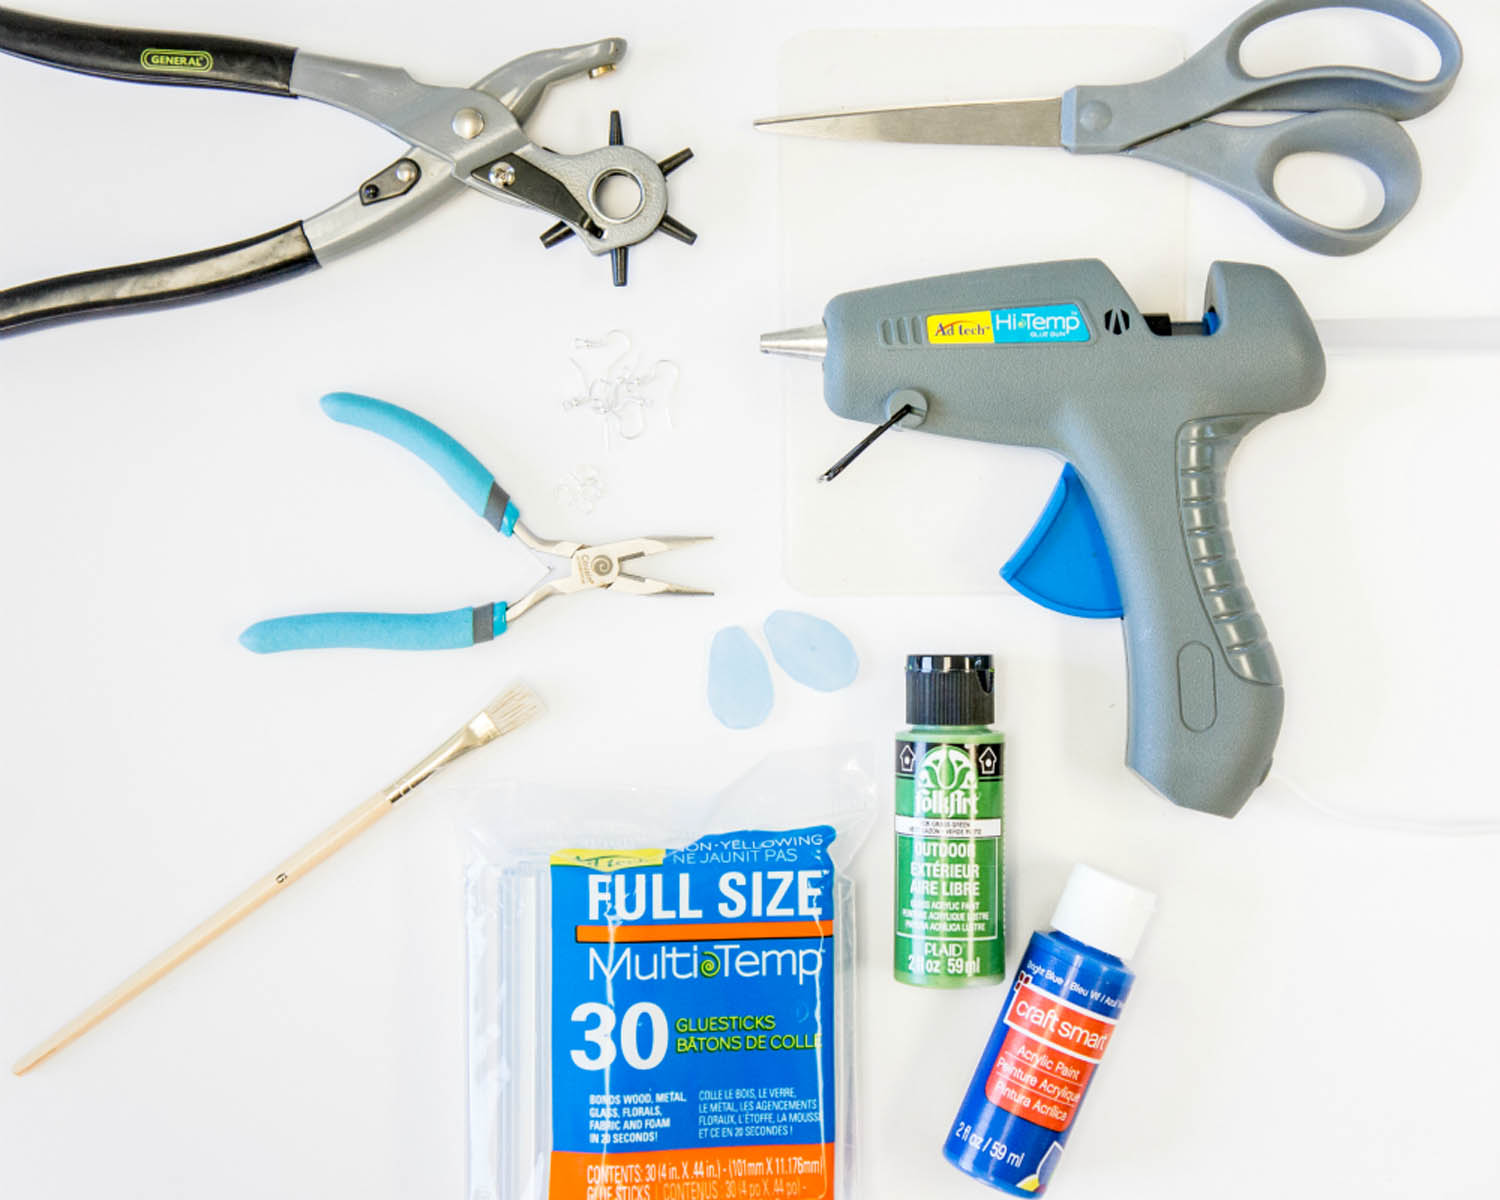 hot glue gun, hot glue sticks, acrylic paint, pliers, jewelry findings to make DIY sea glass earrings from hot glue